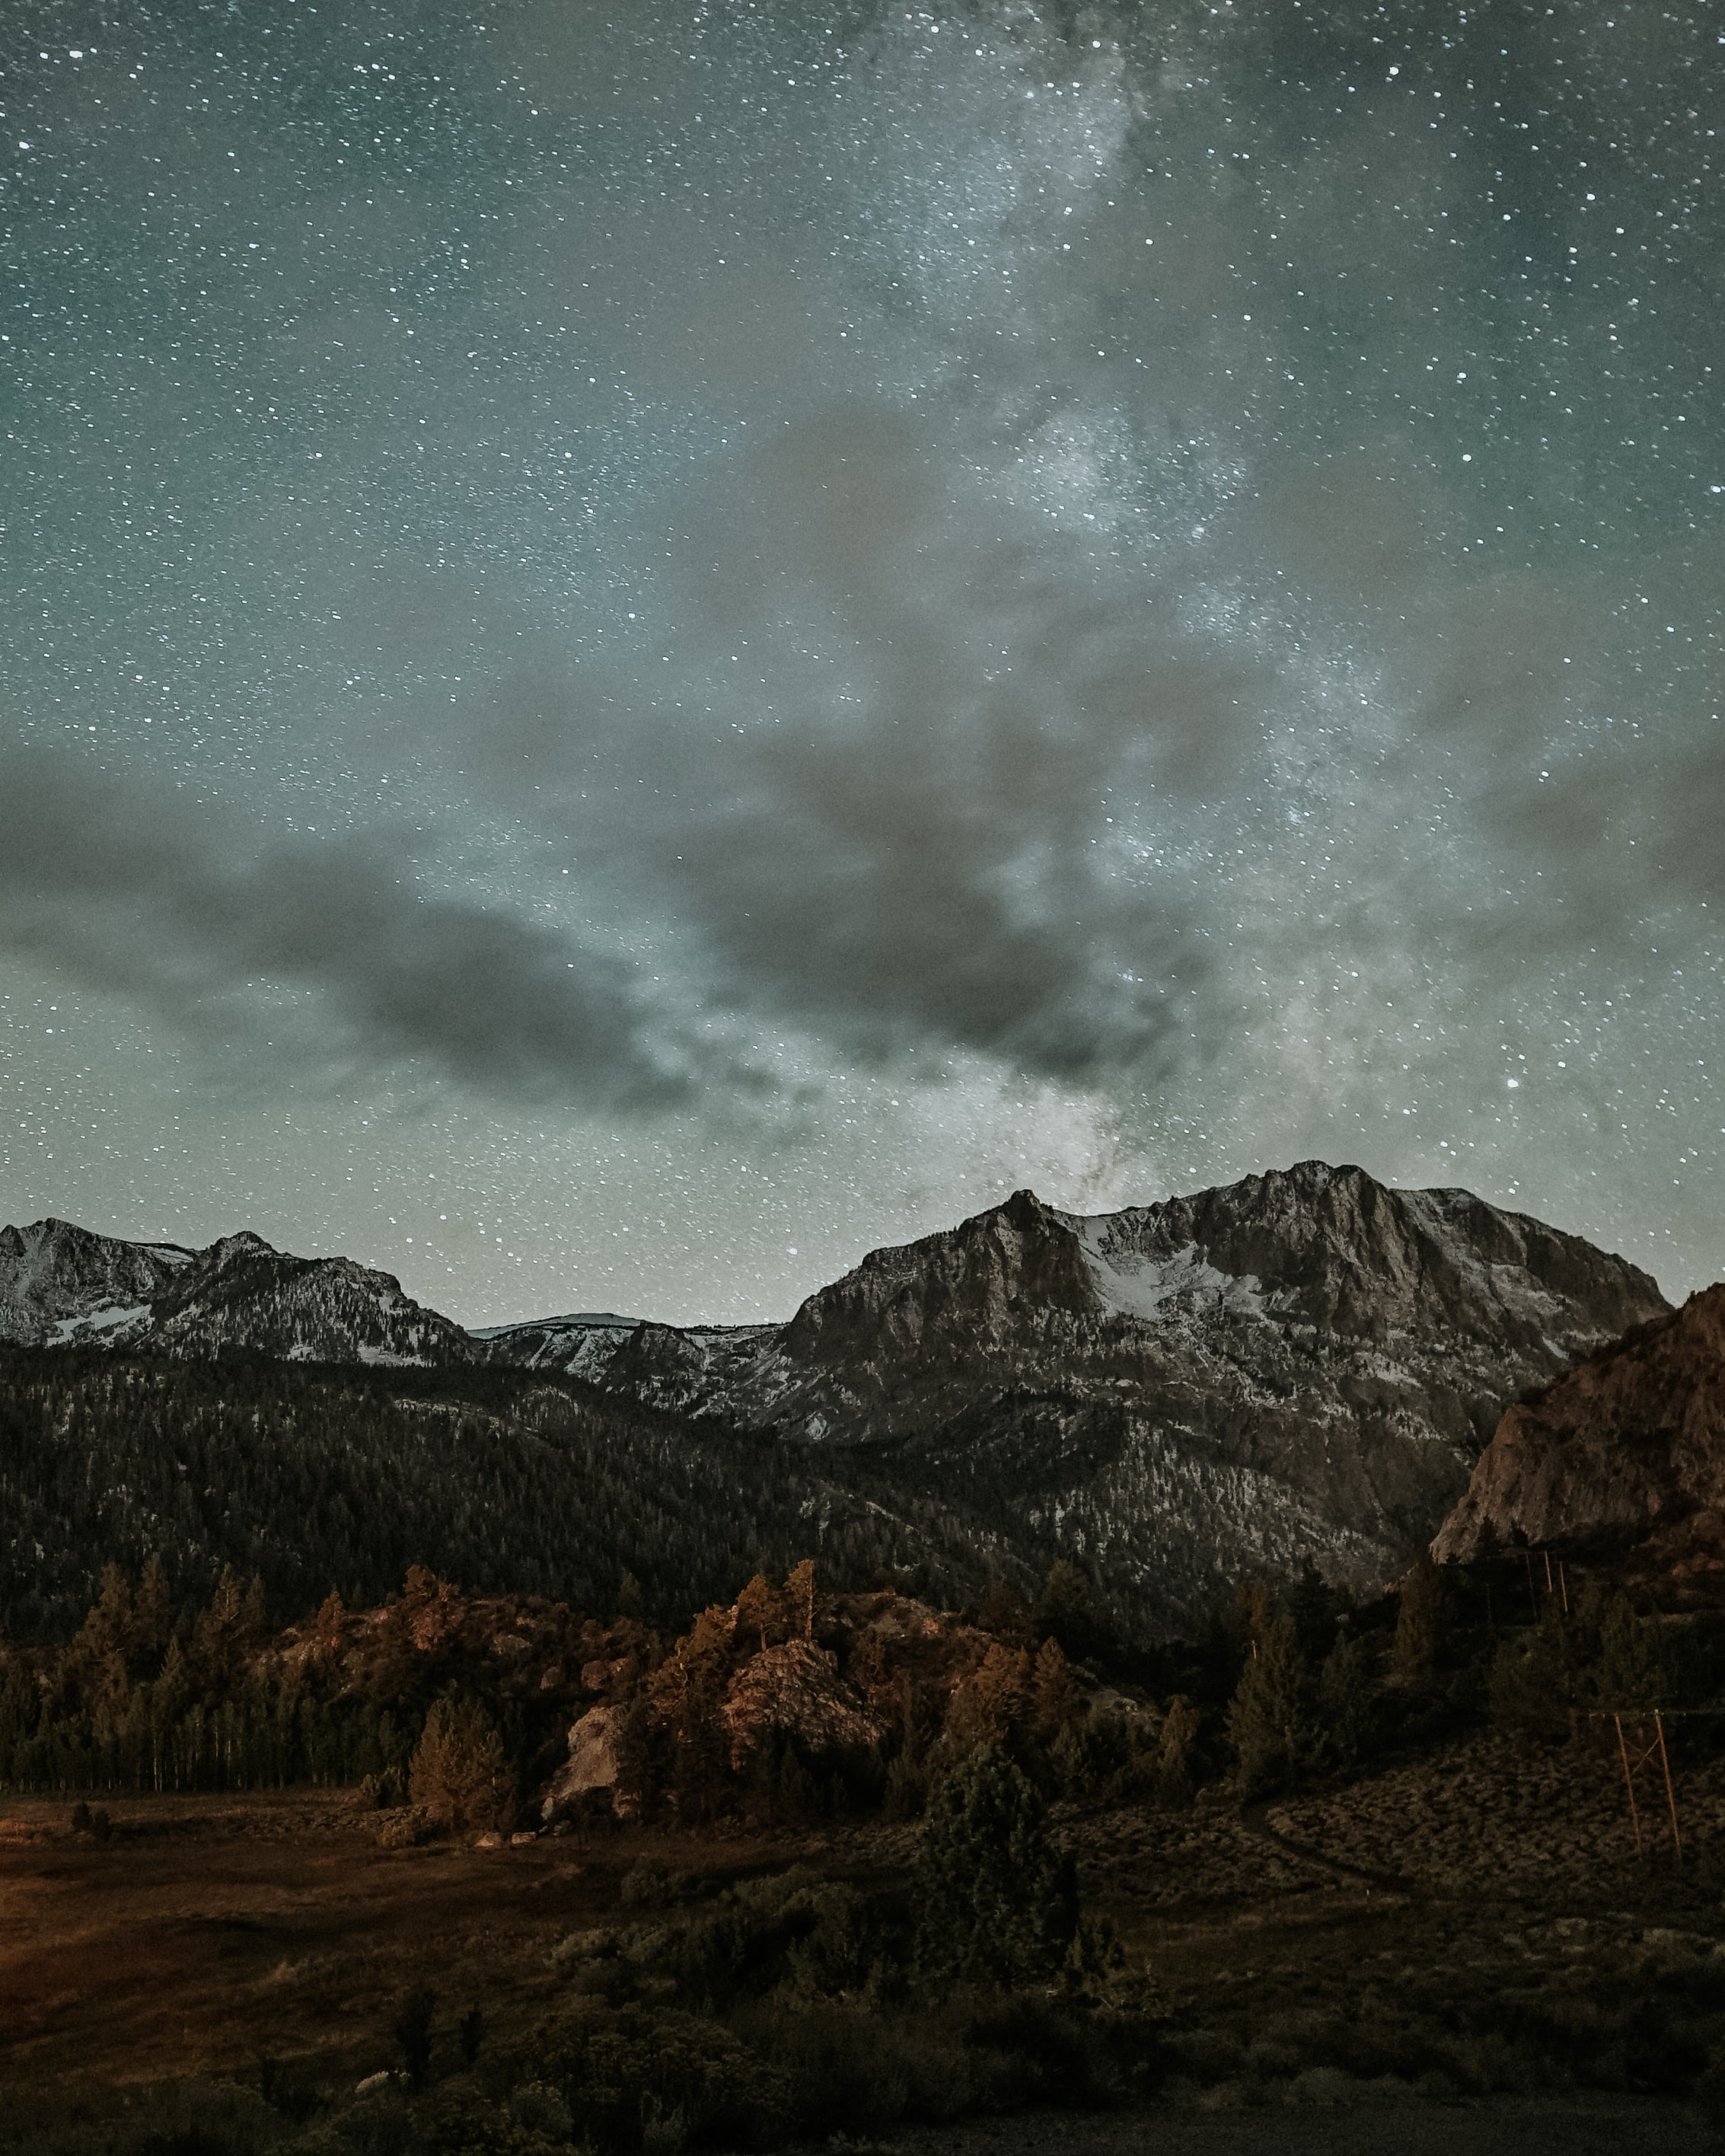 landscape photography of mountains and stars